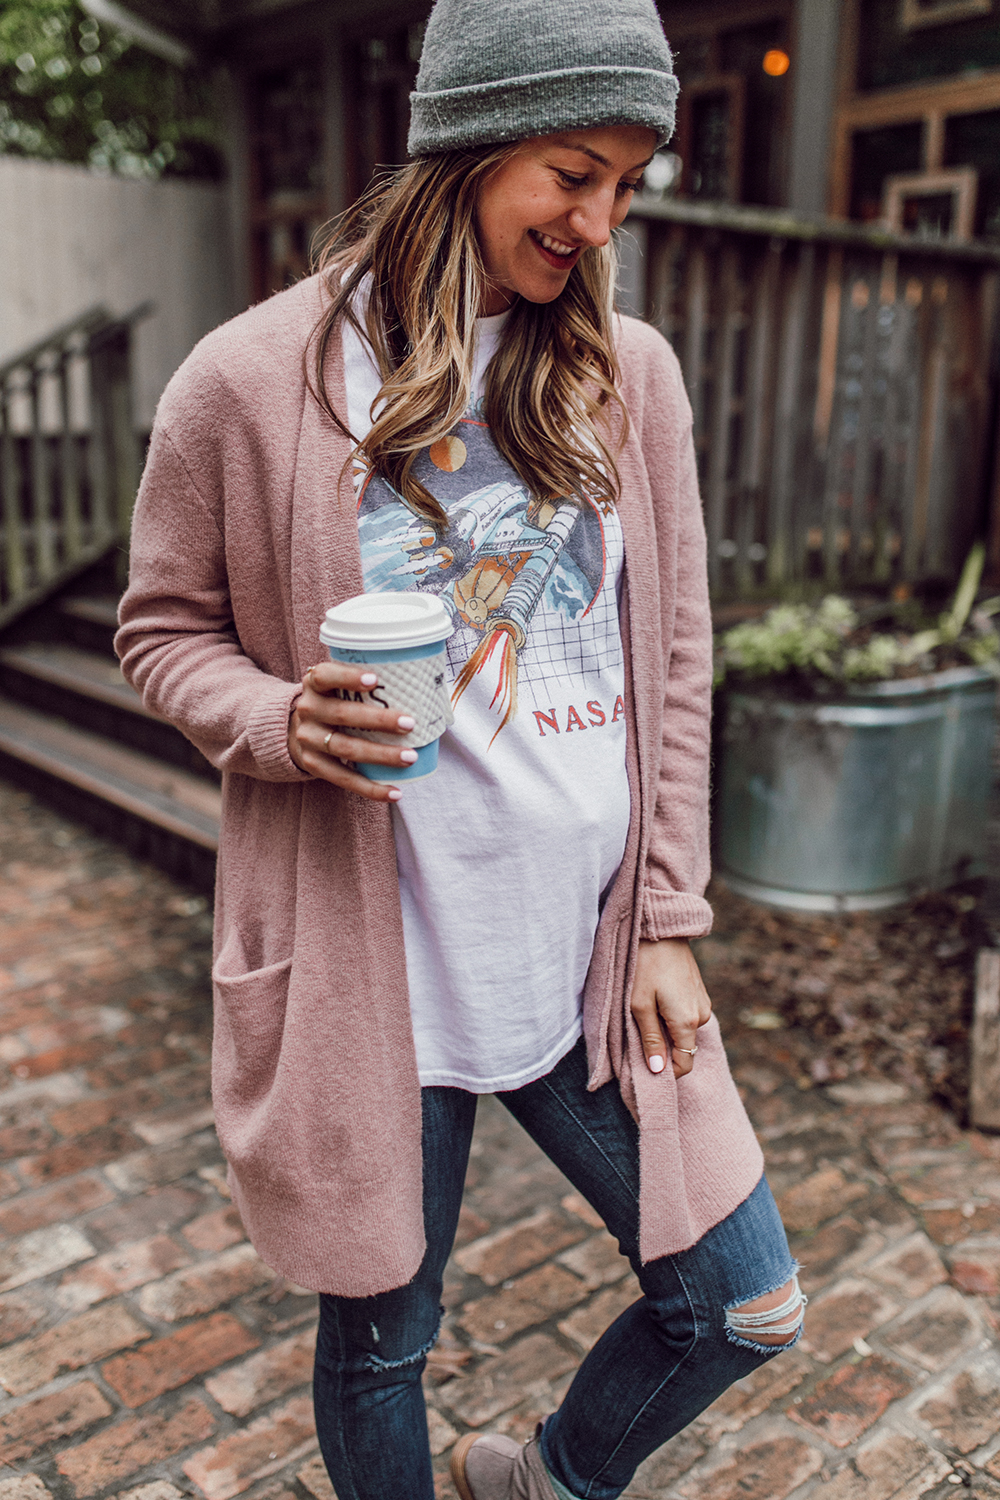 livvyland-blog-olivia-watson-austin-texas-fashion-lifestyle-blogger-koolaburra-lorelei-flat-ankle-booties-taupe-4